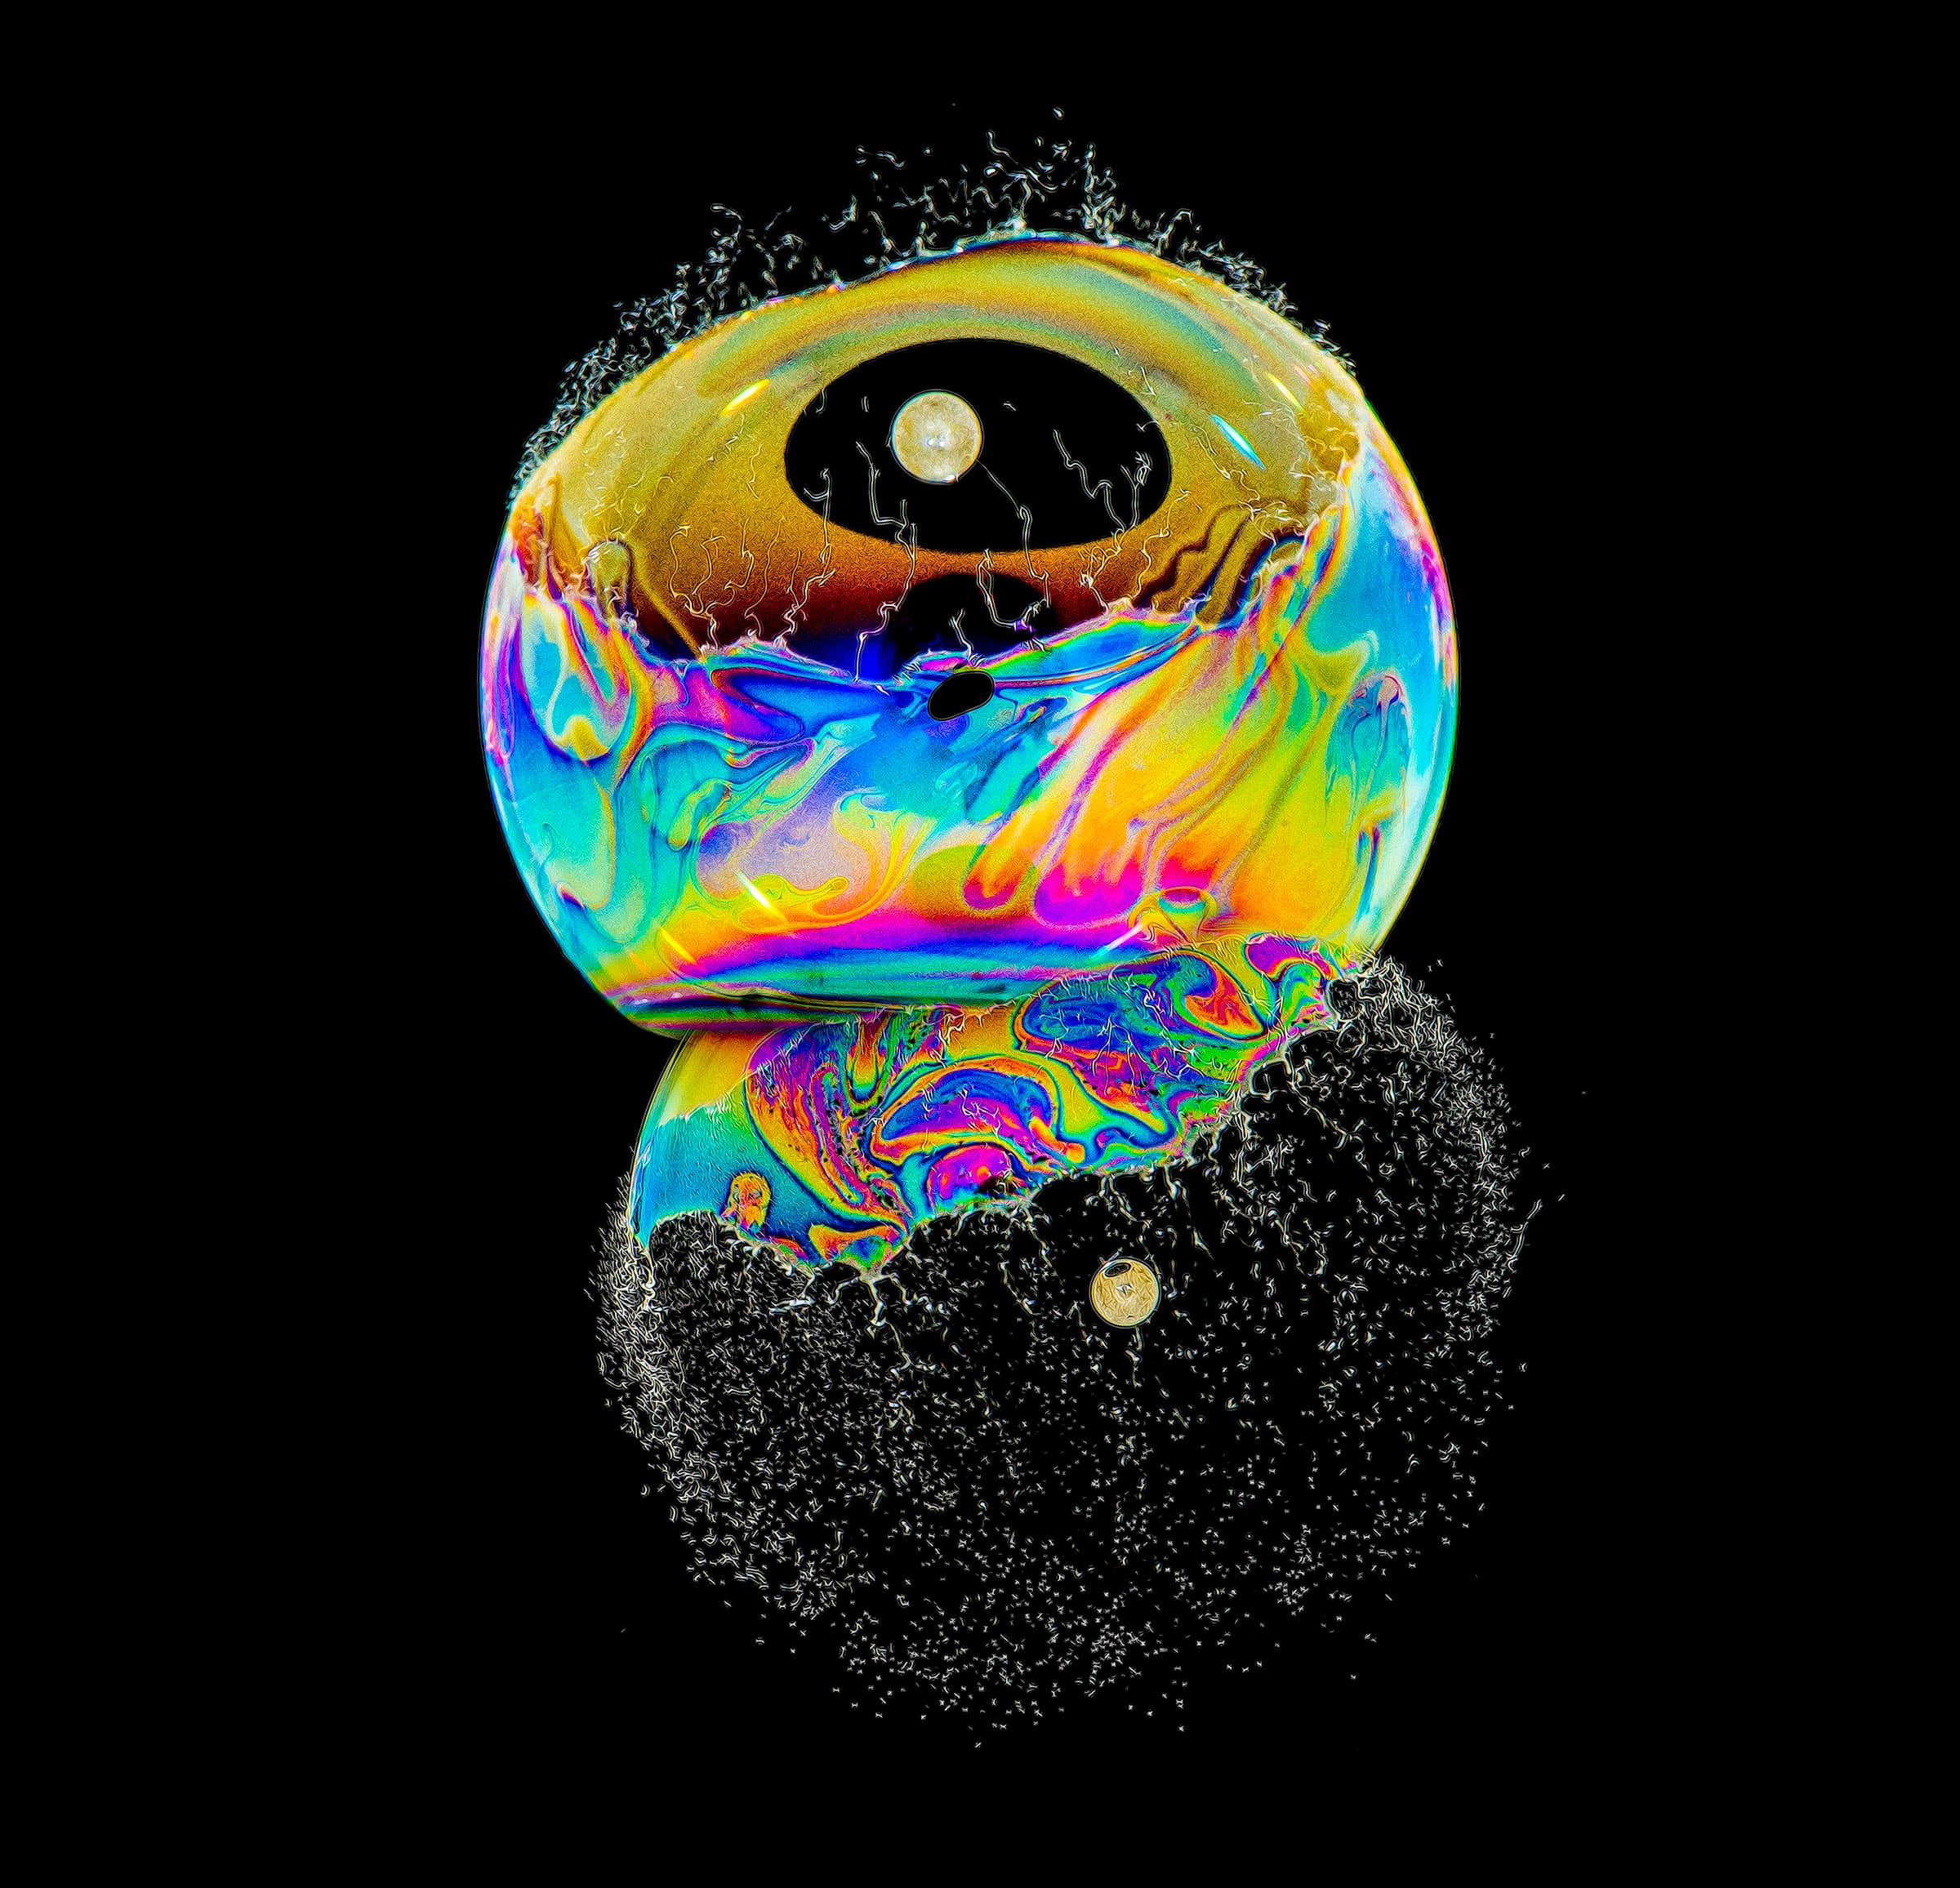 Two colorful soap bubbles bursts with a pellets and look as though they are reflected in glass.